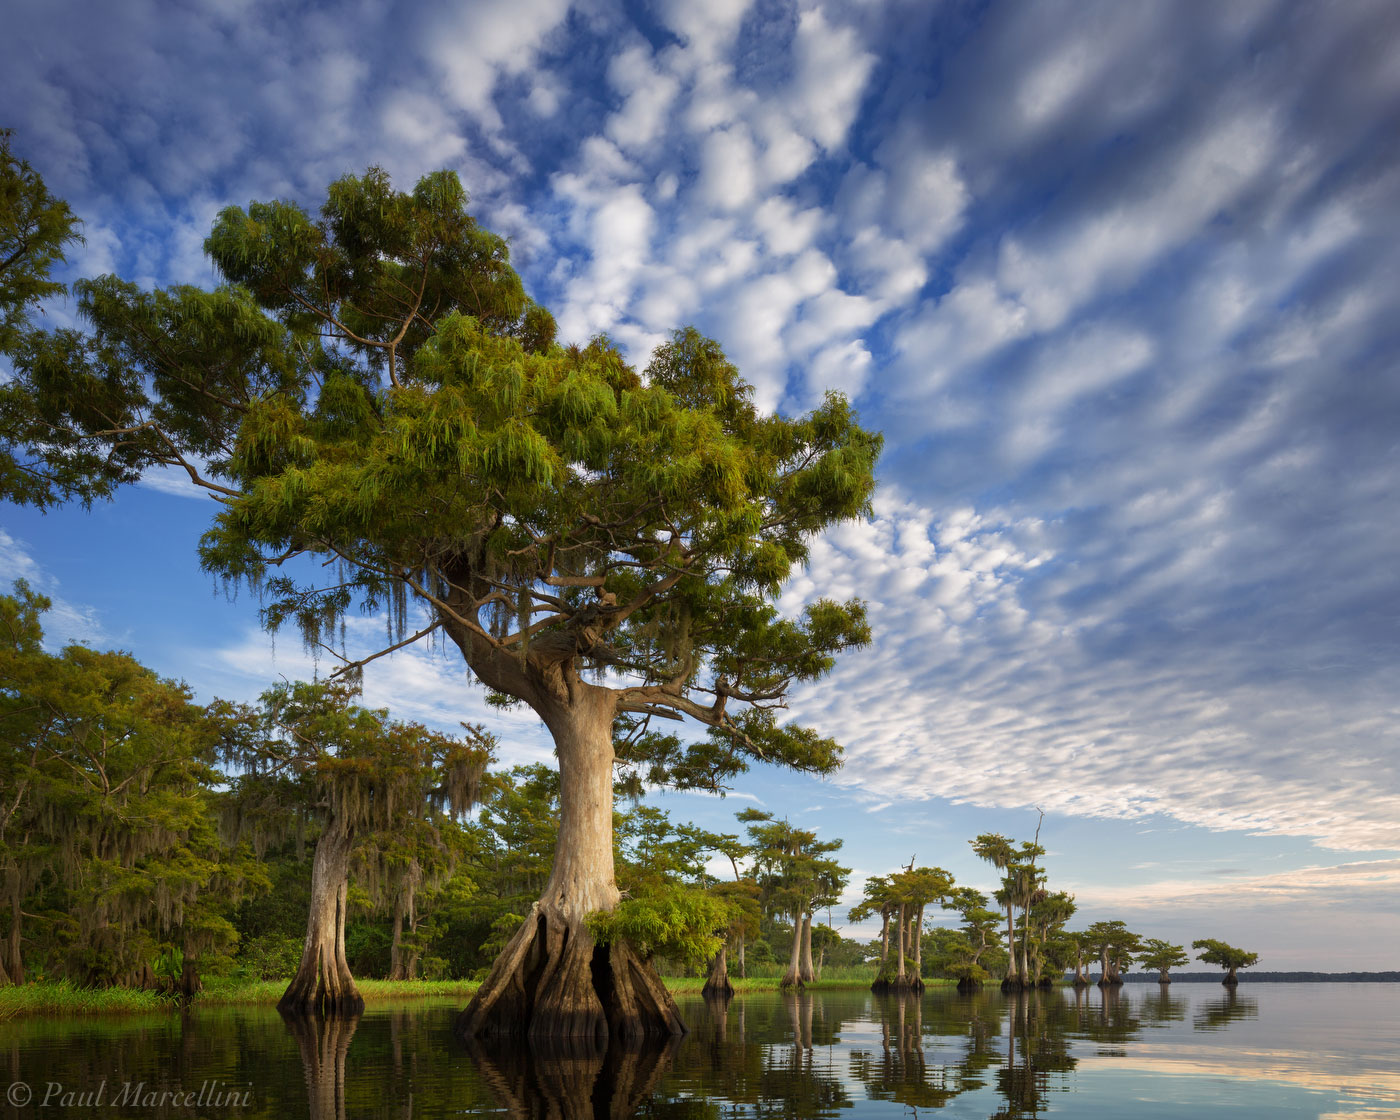 Blue Cypress Lake, Indian River County, Florida, south florida, nature, photography, photo